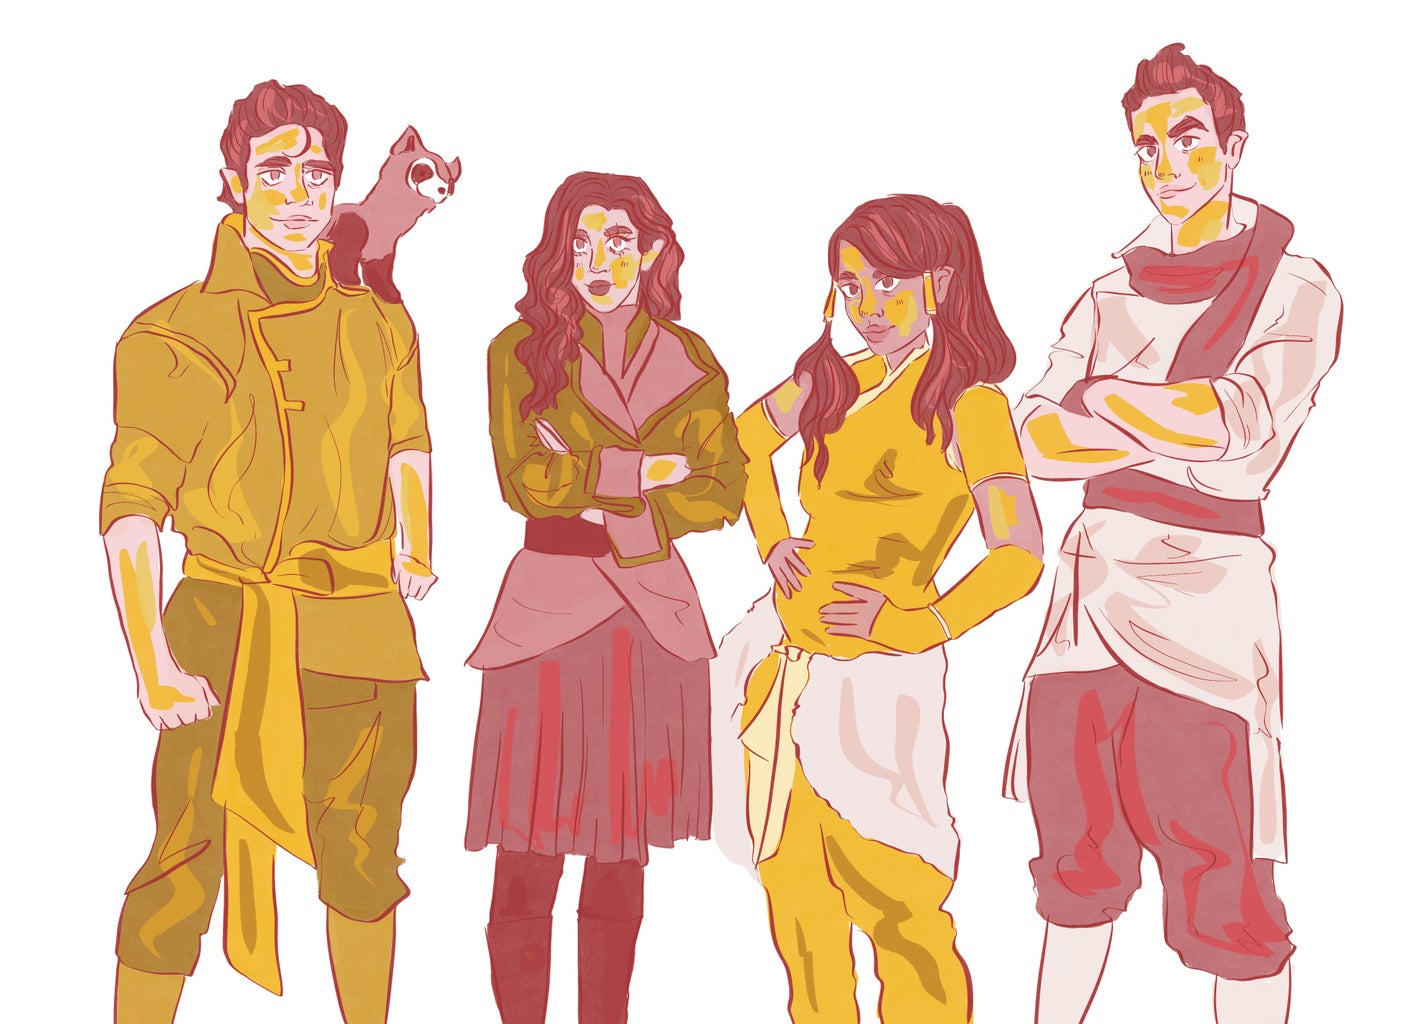 Drawing of the characters from Legend of Korra.